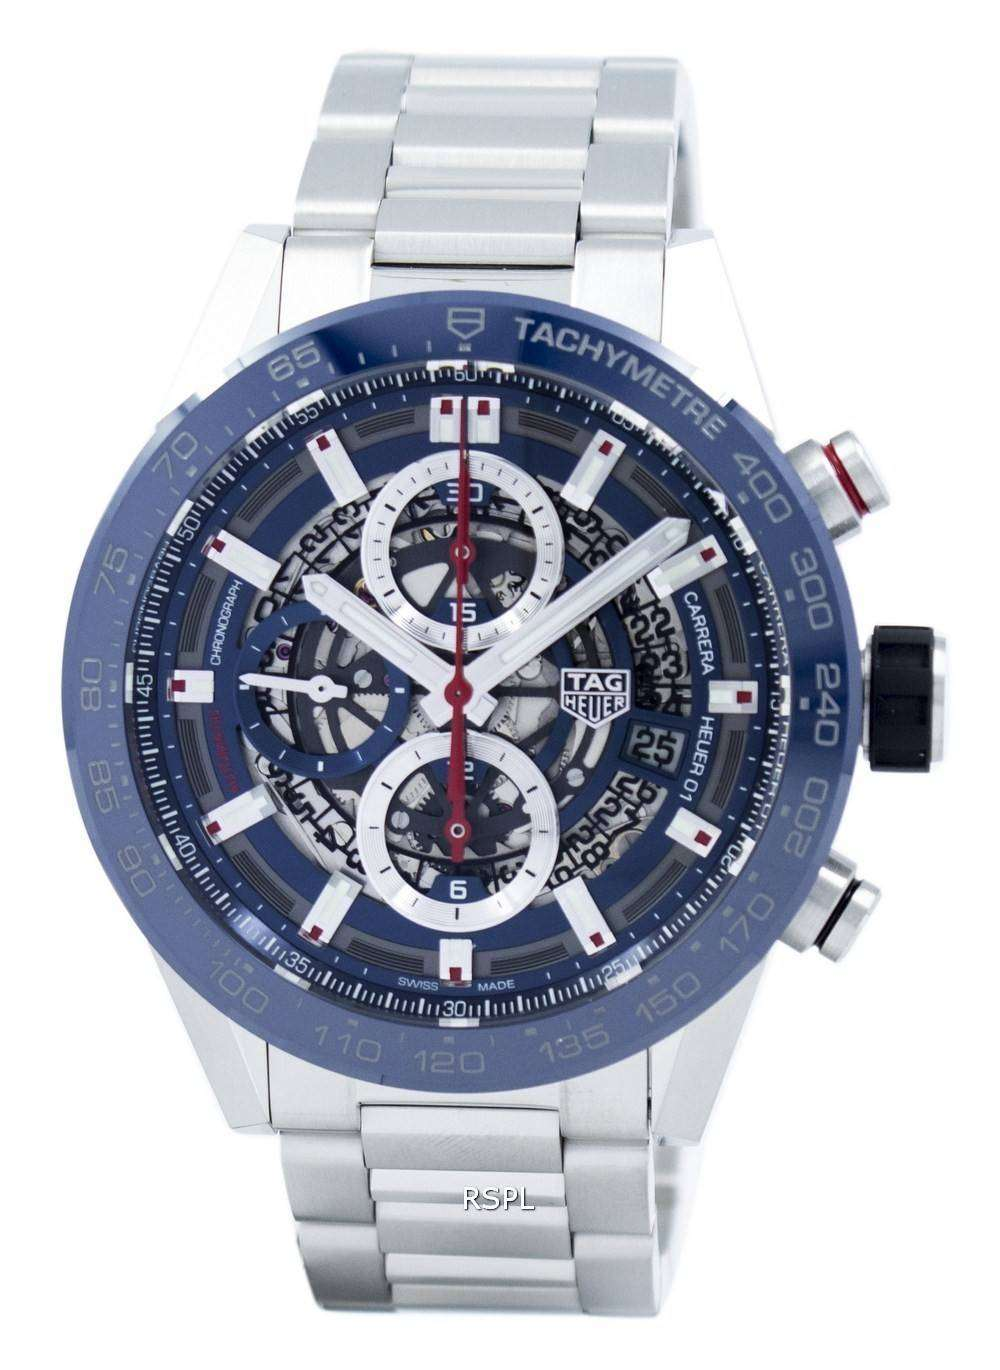 Tag Heuer Carrera Chronograph Automatic CAR201T.BA0766 Men's Watch